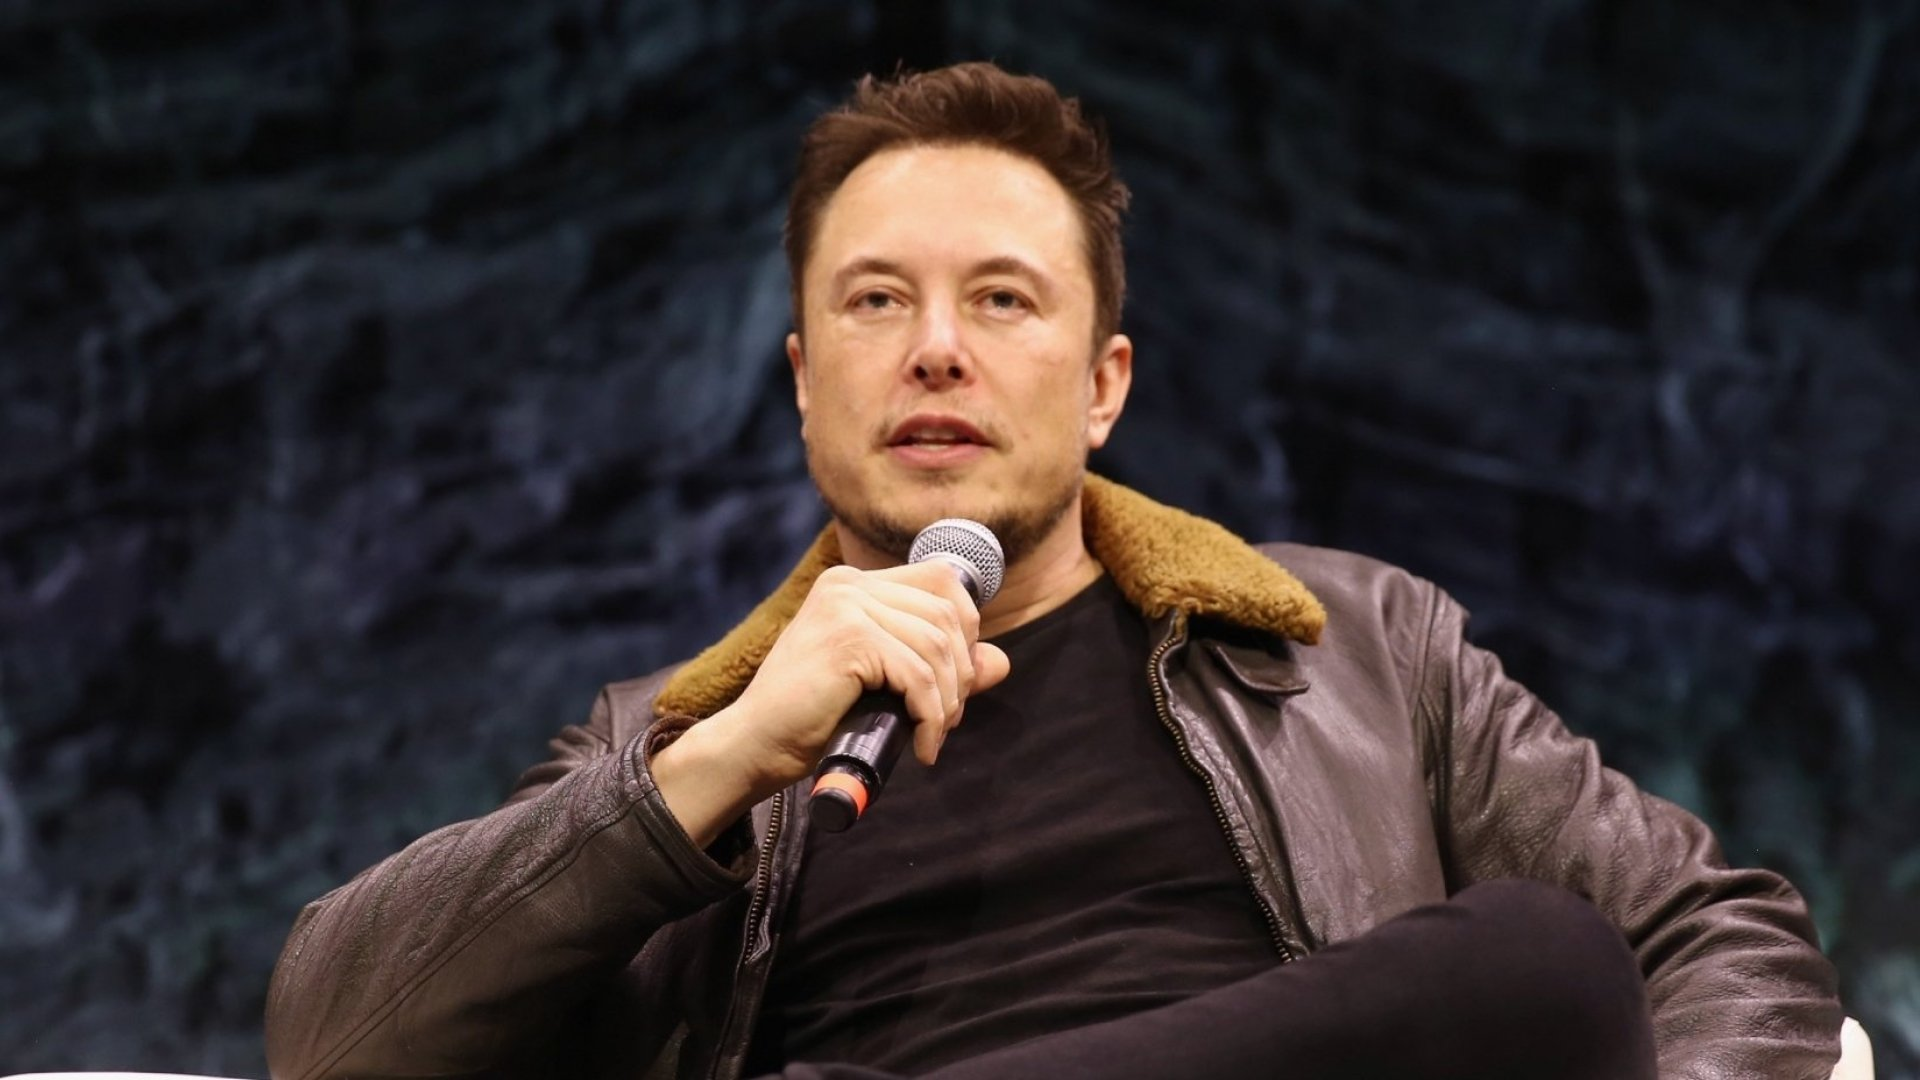 Elon Musk's Response to Bill Gates's Buying a Porsche Is a Perfect Example of How Not to Take a Compliment